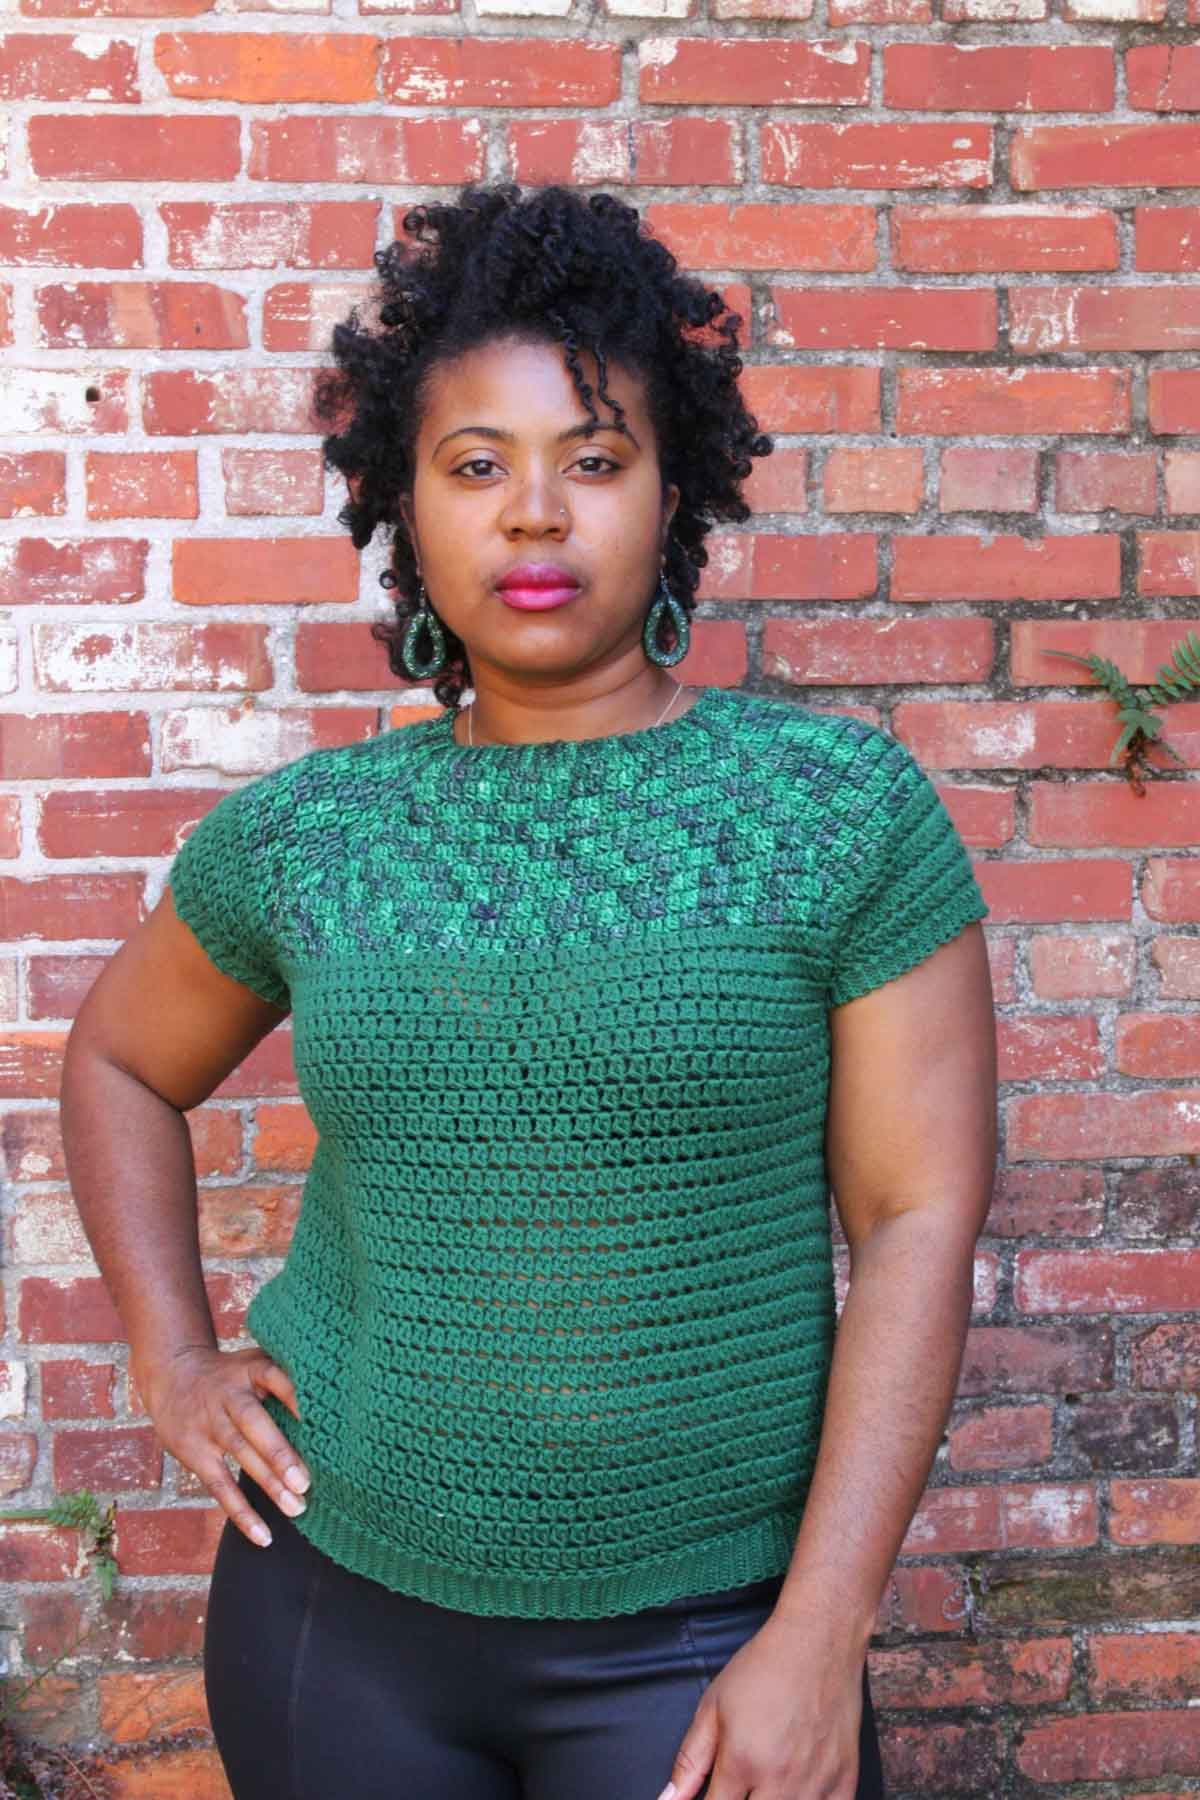 Nkese Lewis, pictured here wearing a green crochet summer top, provides tips on how to become a crochet pattern tester.